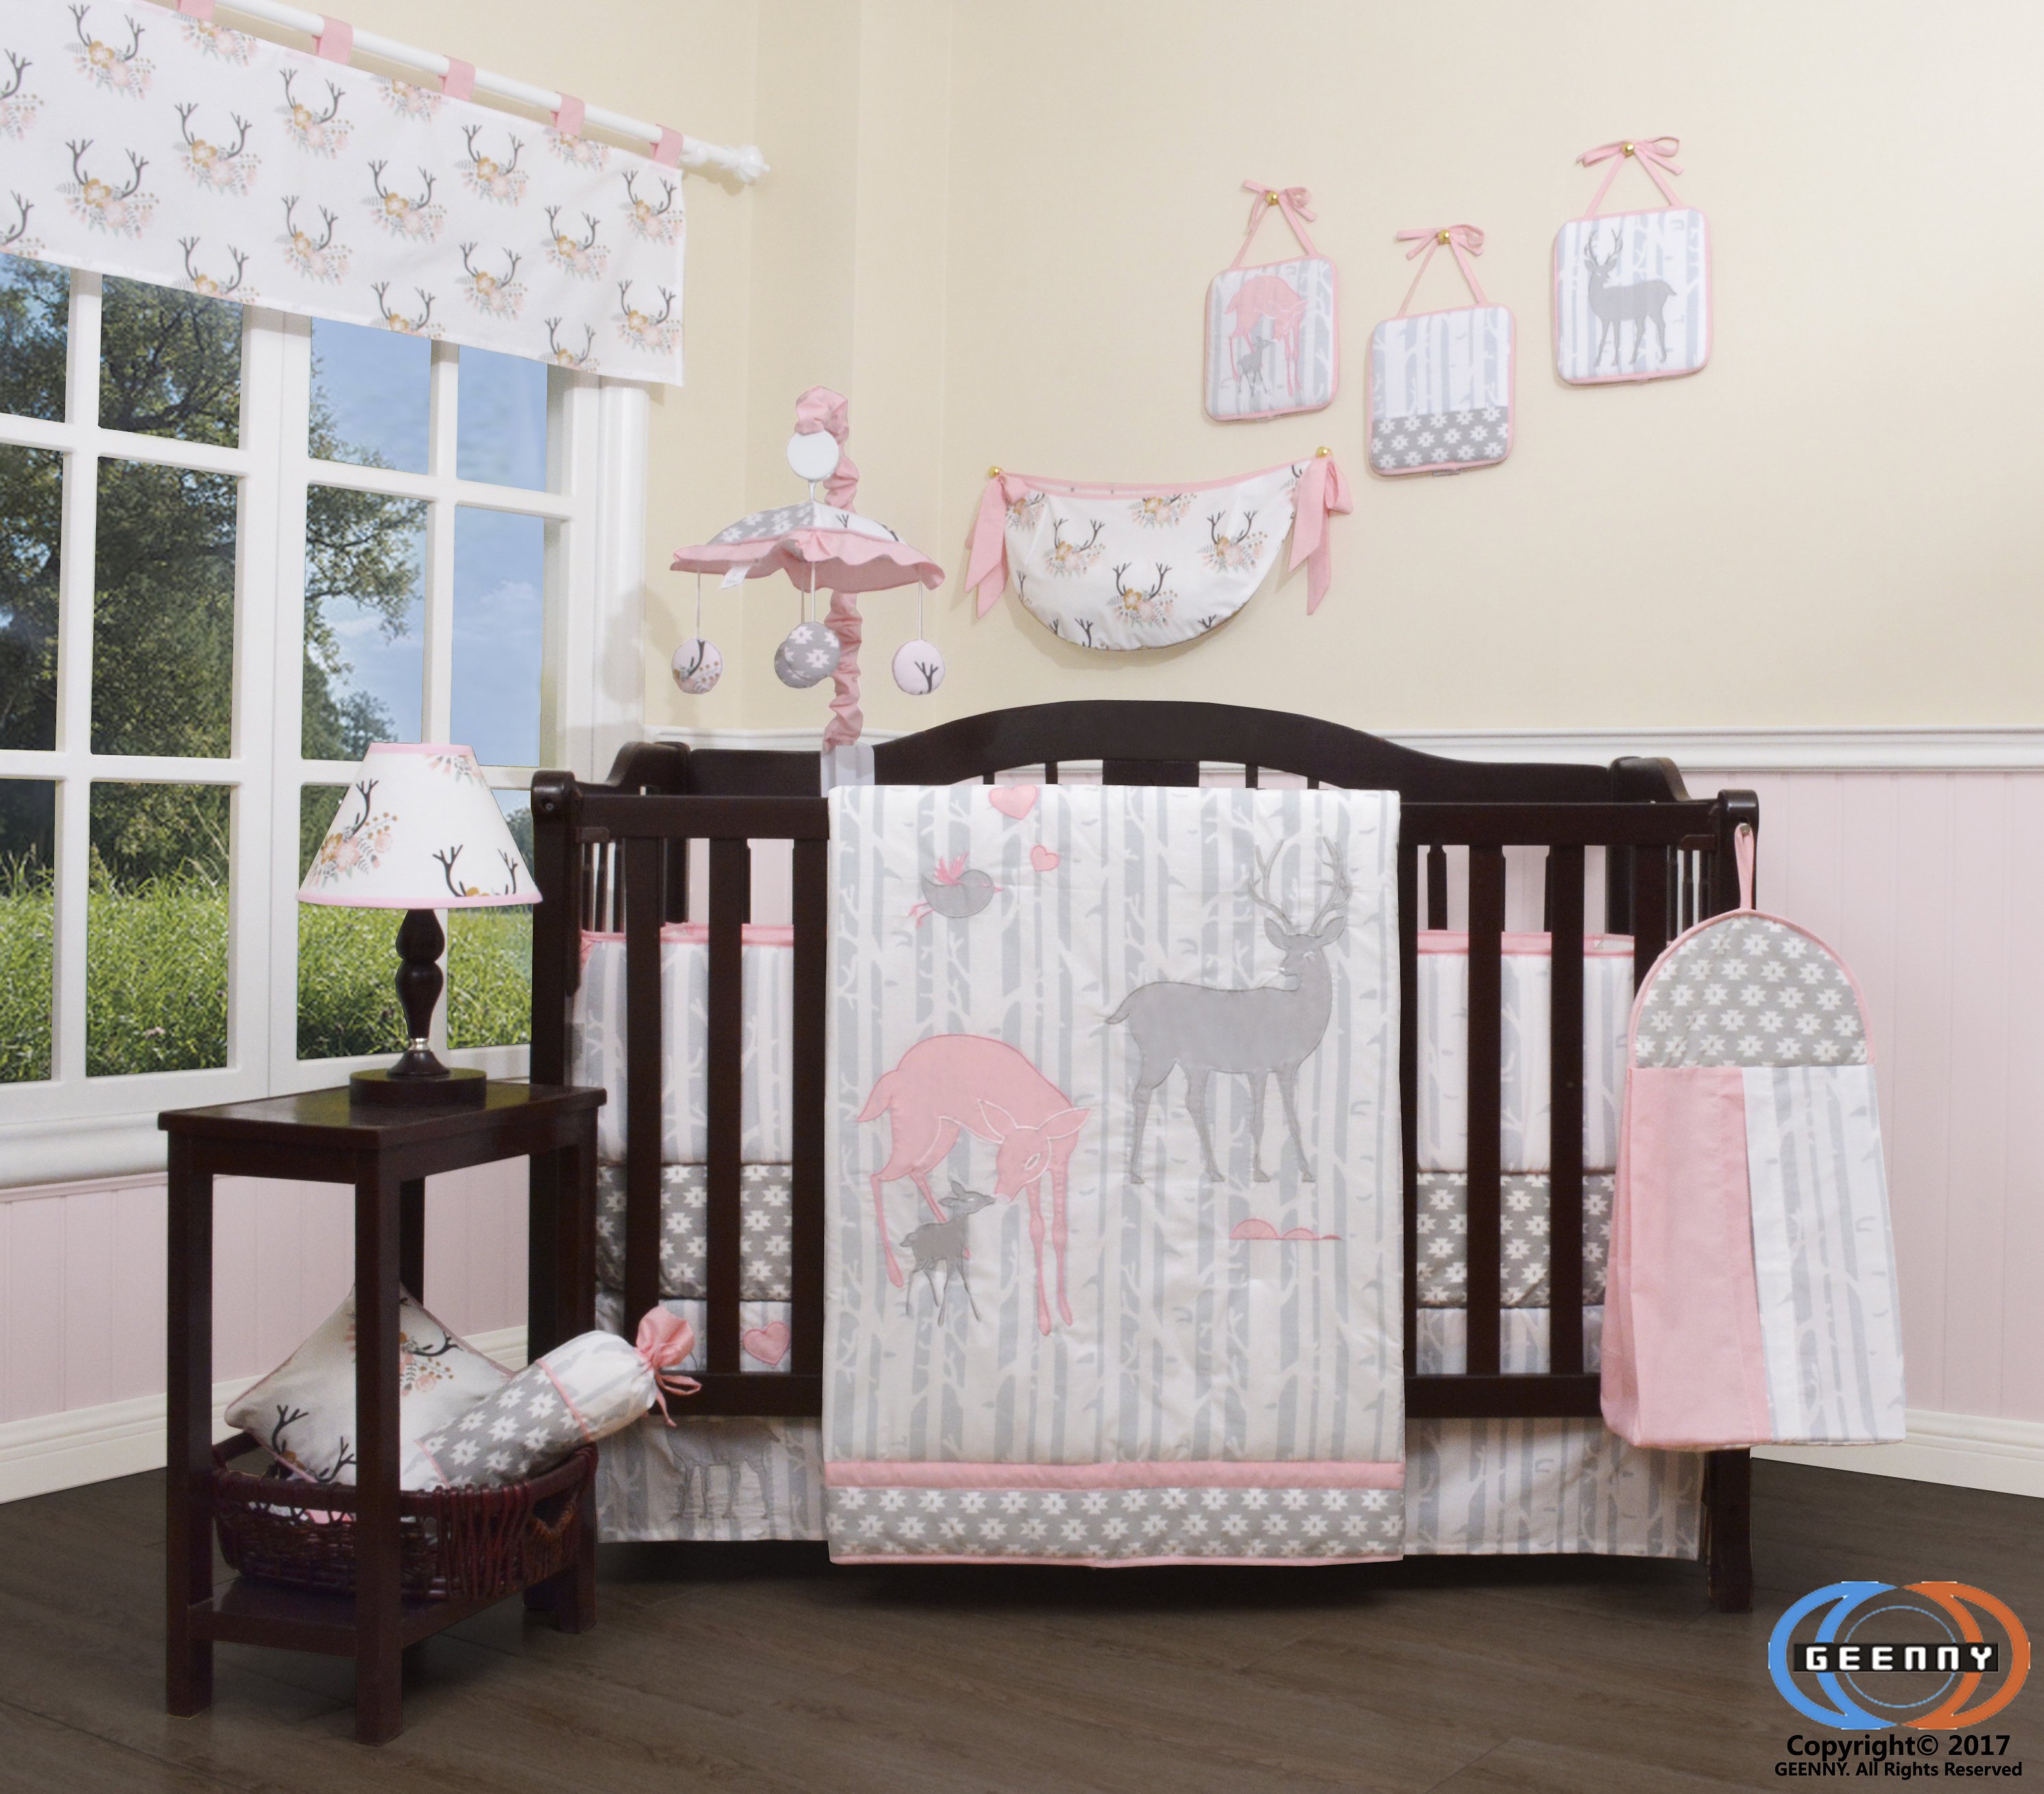 Harriet Bee Three Lakes Baby Girl Deer Family Nursery 13 Piece Crib Bedding  Set & Reviews | Wayfair